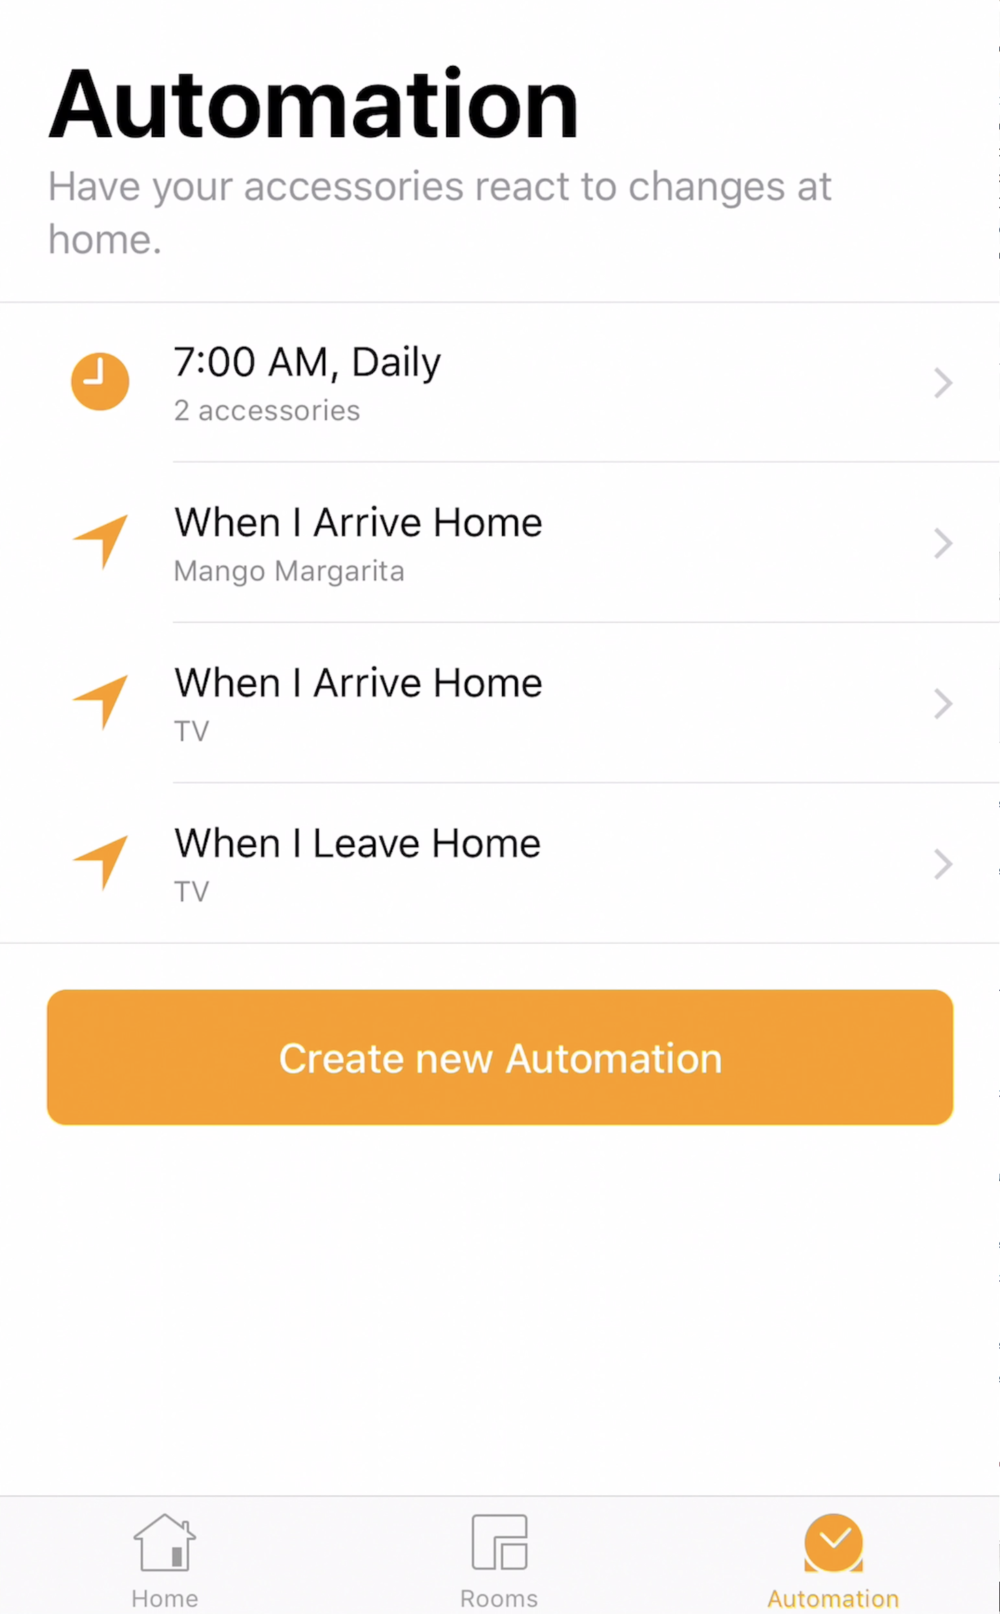 You can setup Automations in nearly any HomeKit app, including Apple's own built-in Home App